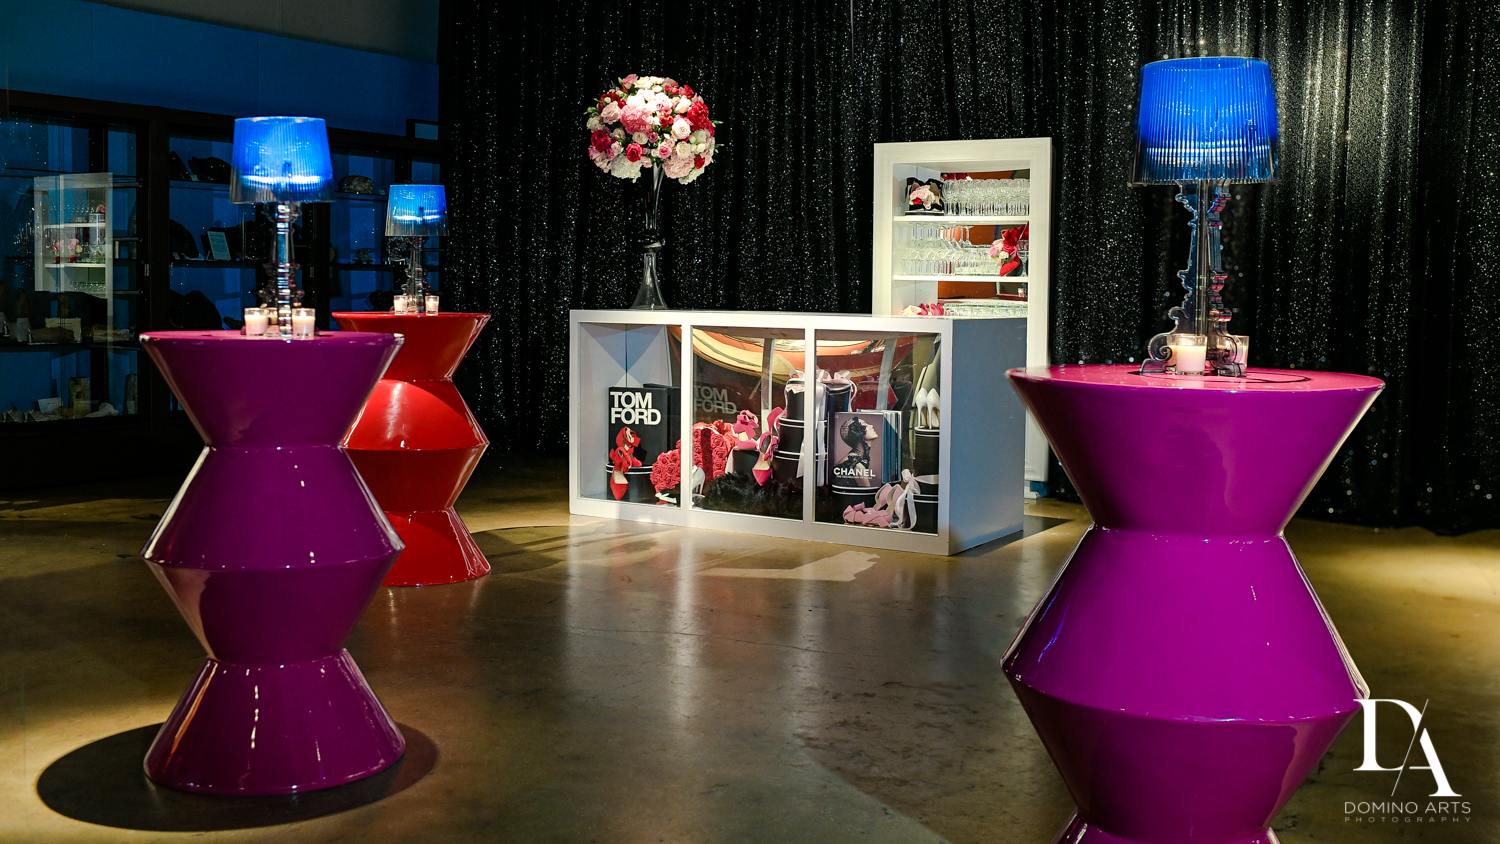 amazing decor at Fashion Theme Bat Mitzvah at Gallery of Amazing Things by Domino Arts Photography